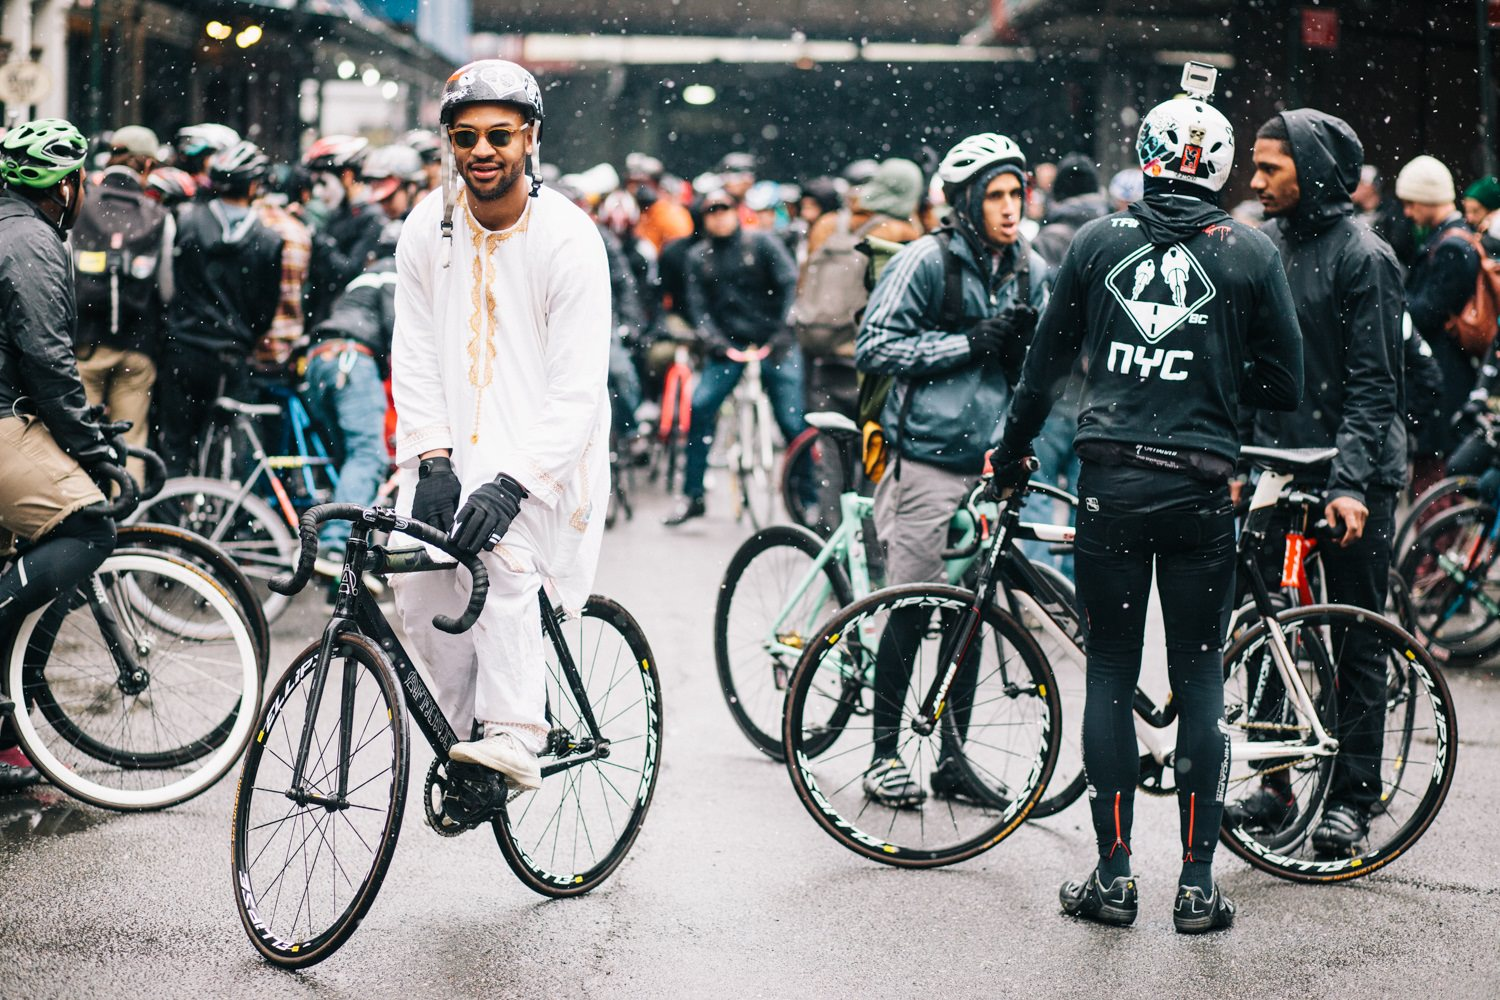 Group of cyclists in the rain